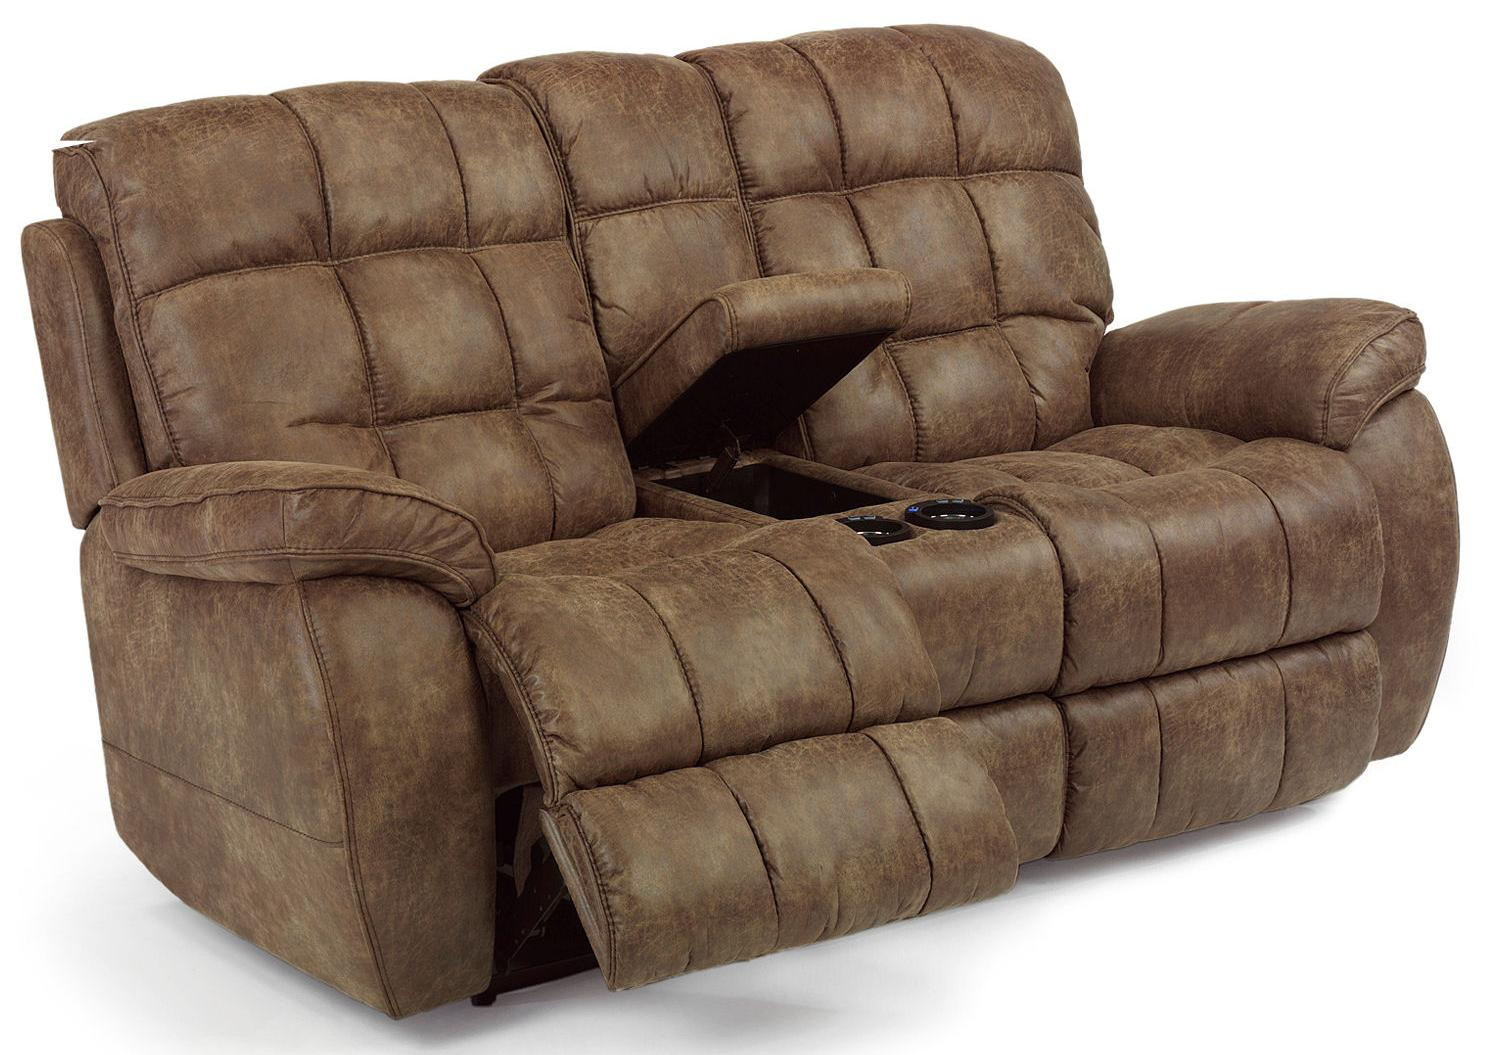 Flexsteel latitudes nashua casual power reclining loveseat with center console olinde 39 s Reclining loveseat with center console